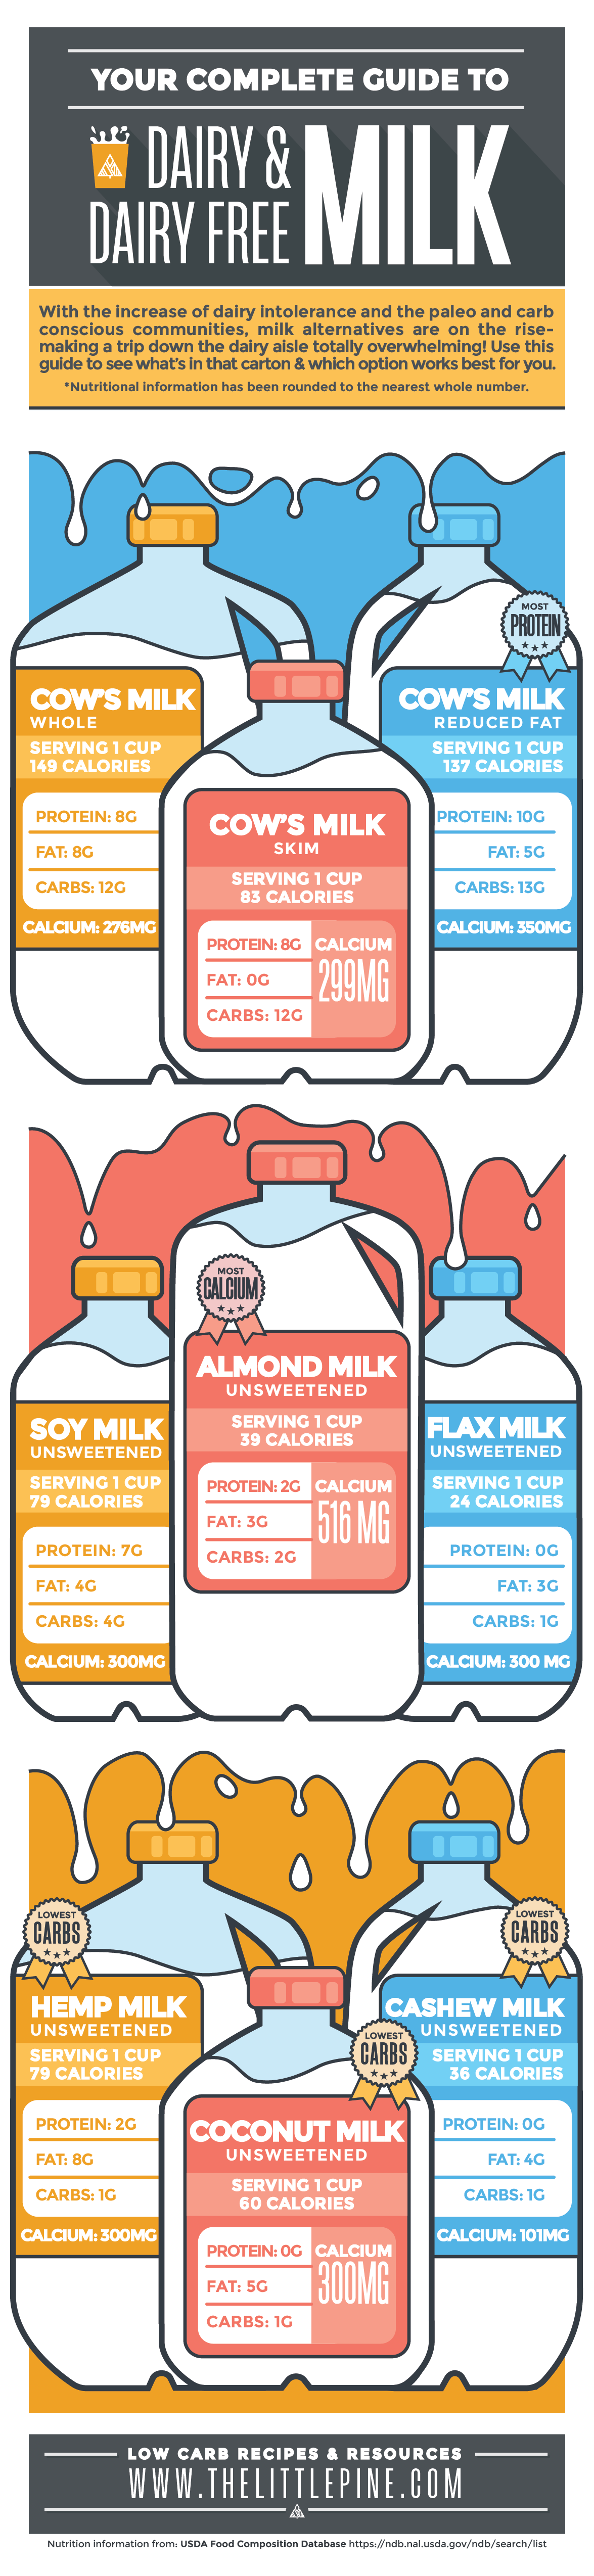 graphic illustration of a complete guide to dairy and dairy free milk